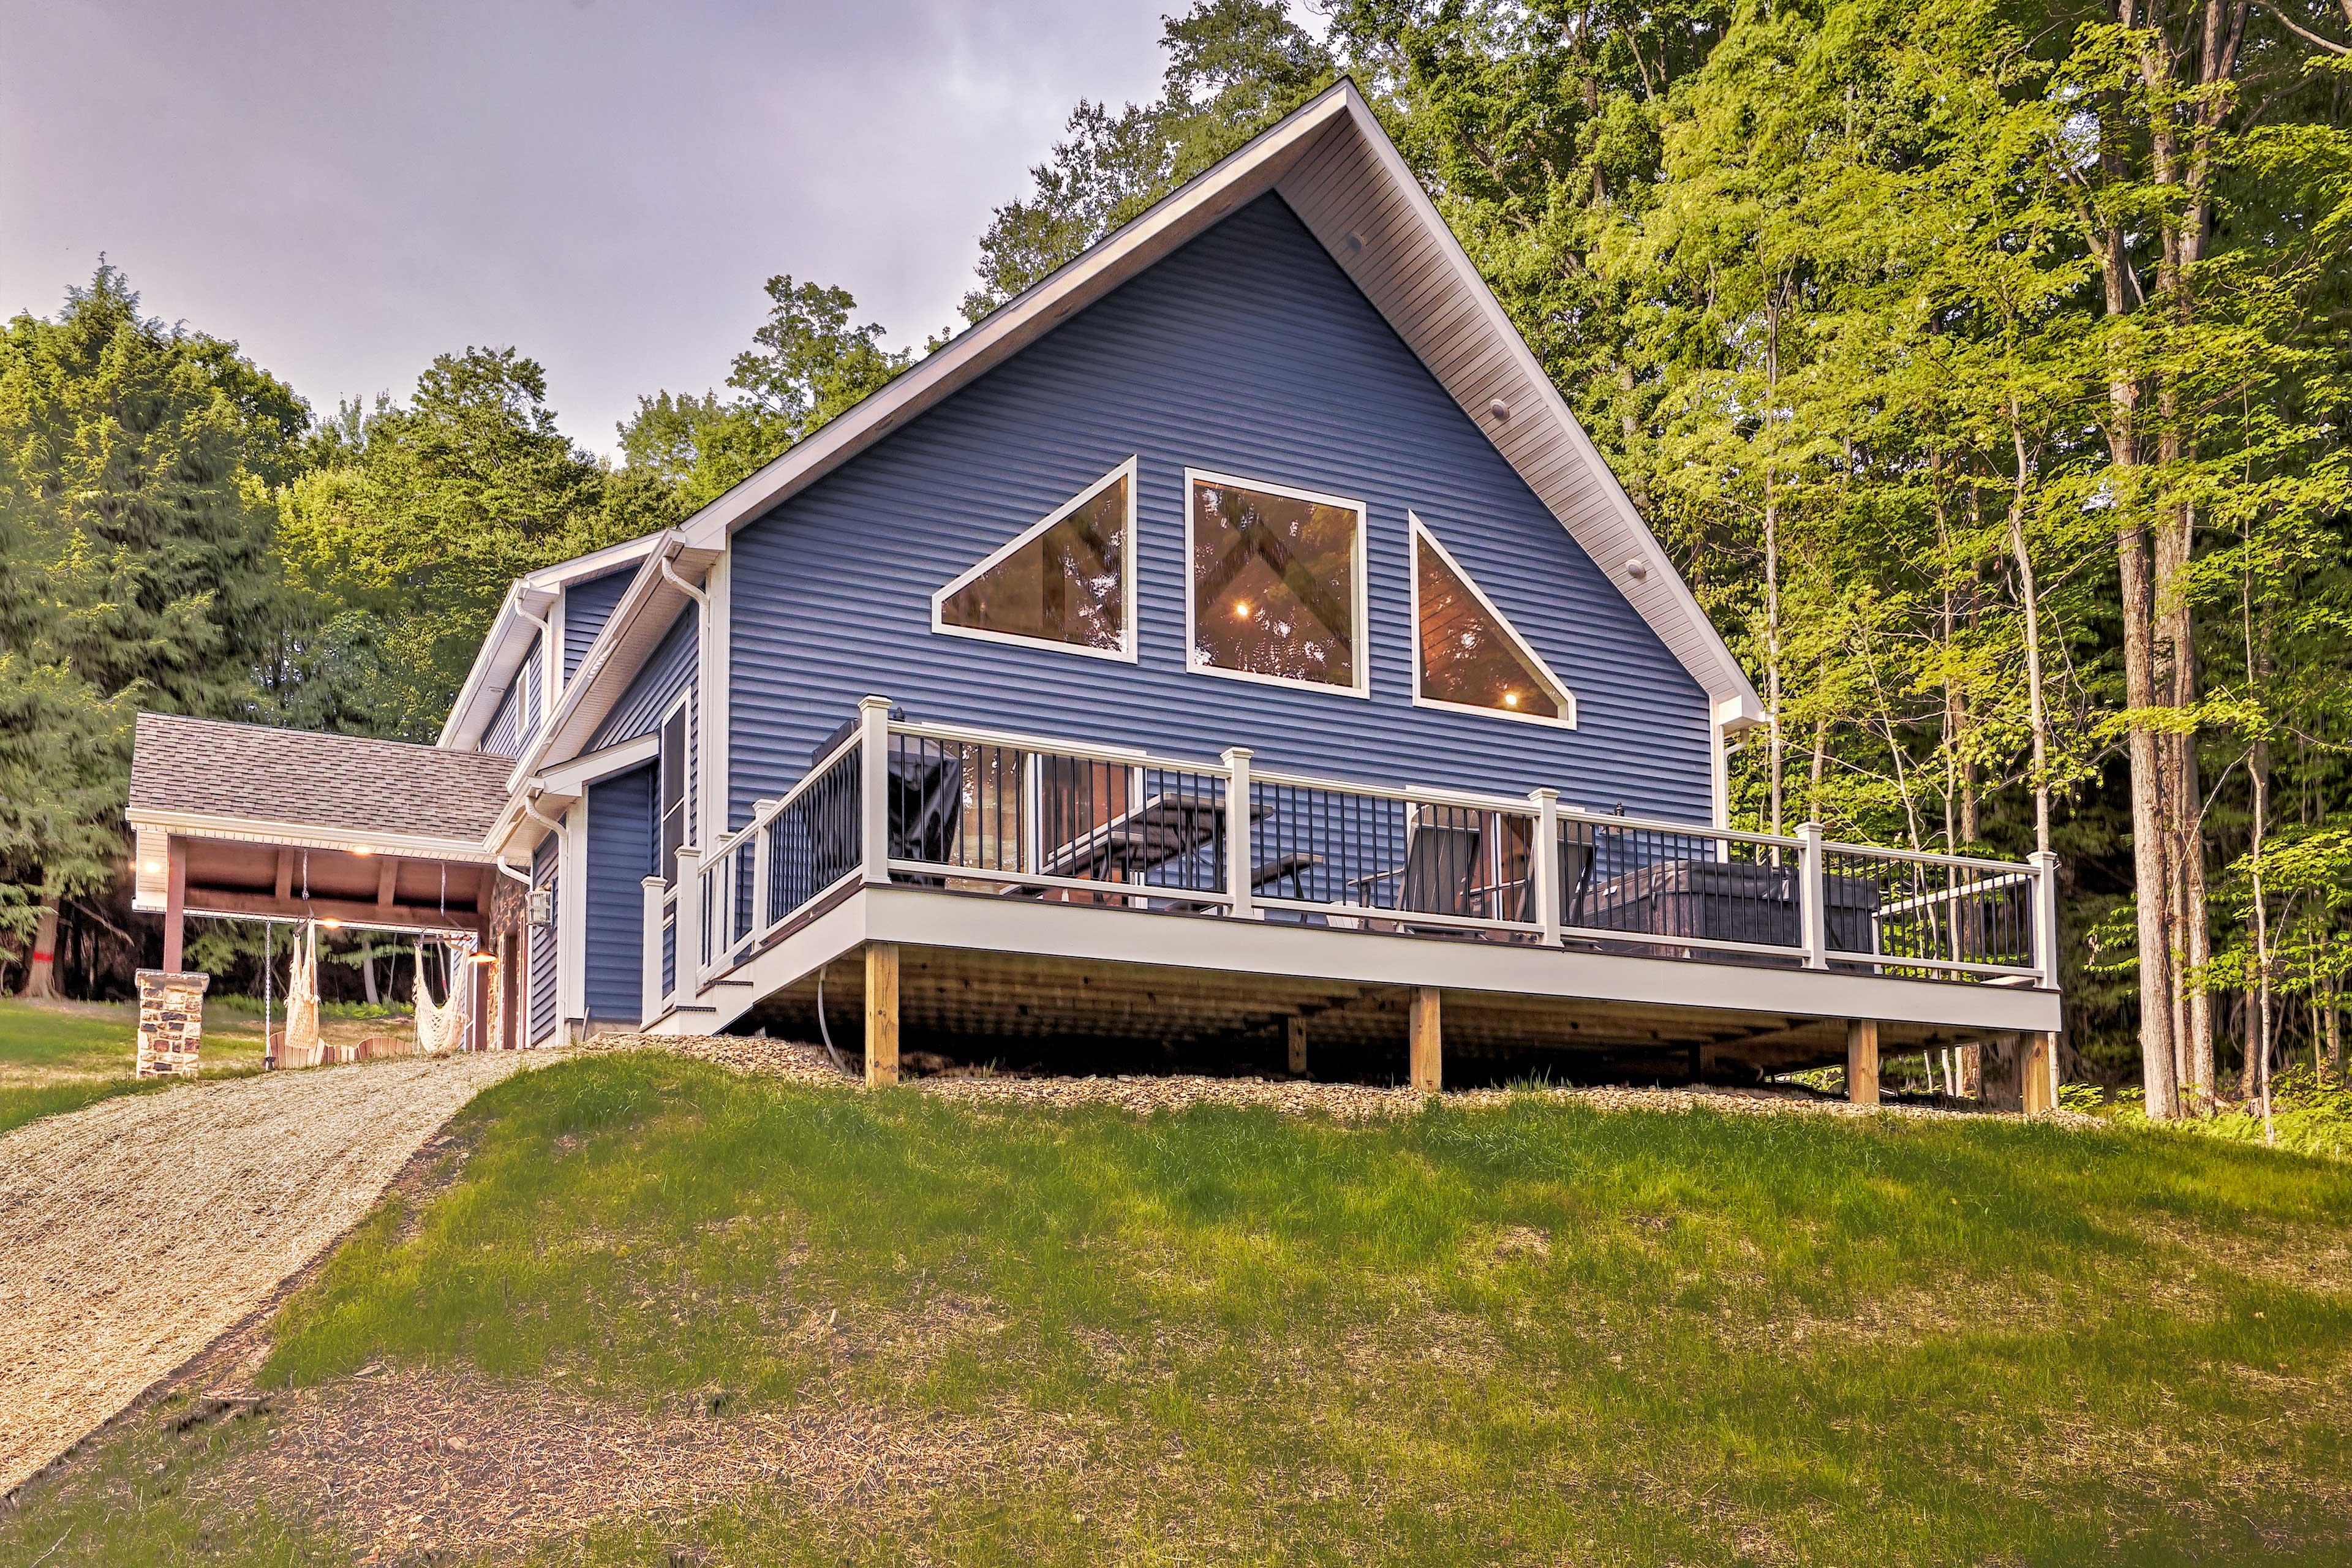 Your group of 16 can stay at this 4-bed, 3-bath Benezette vacation rental.